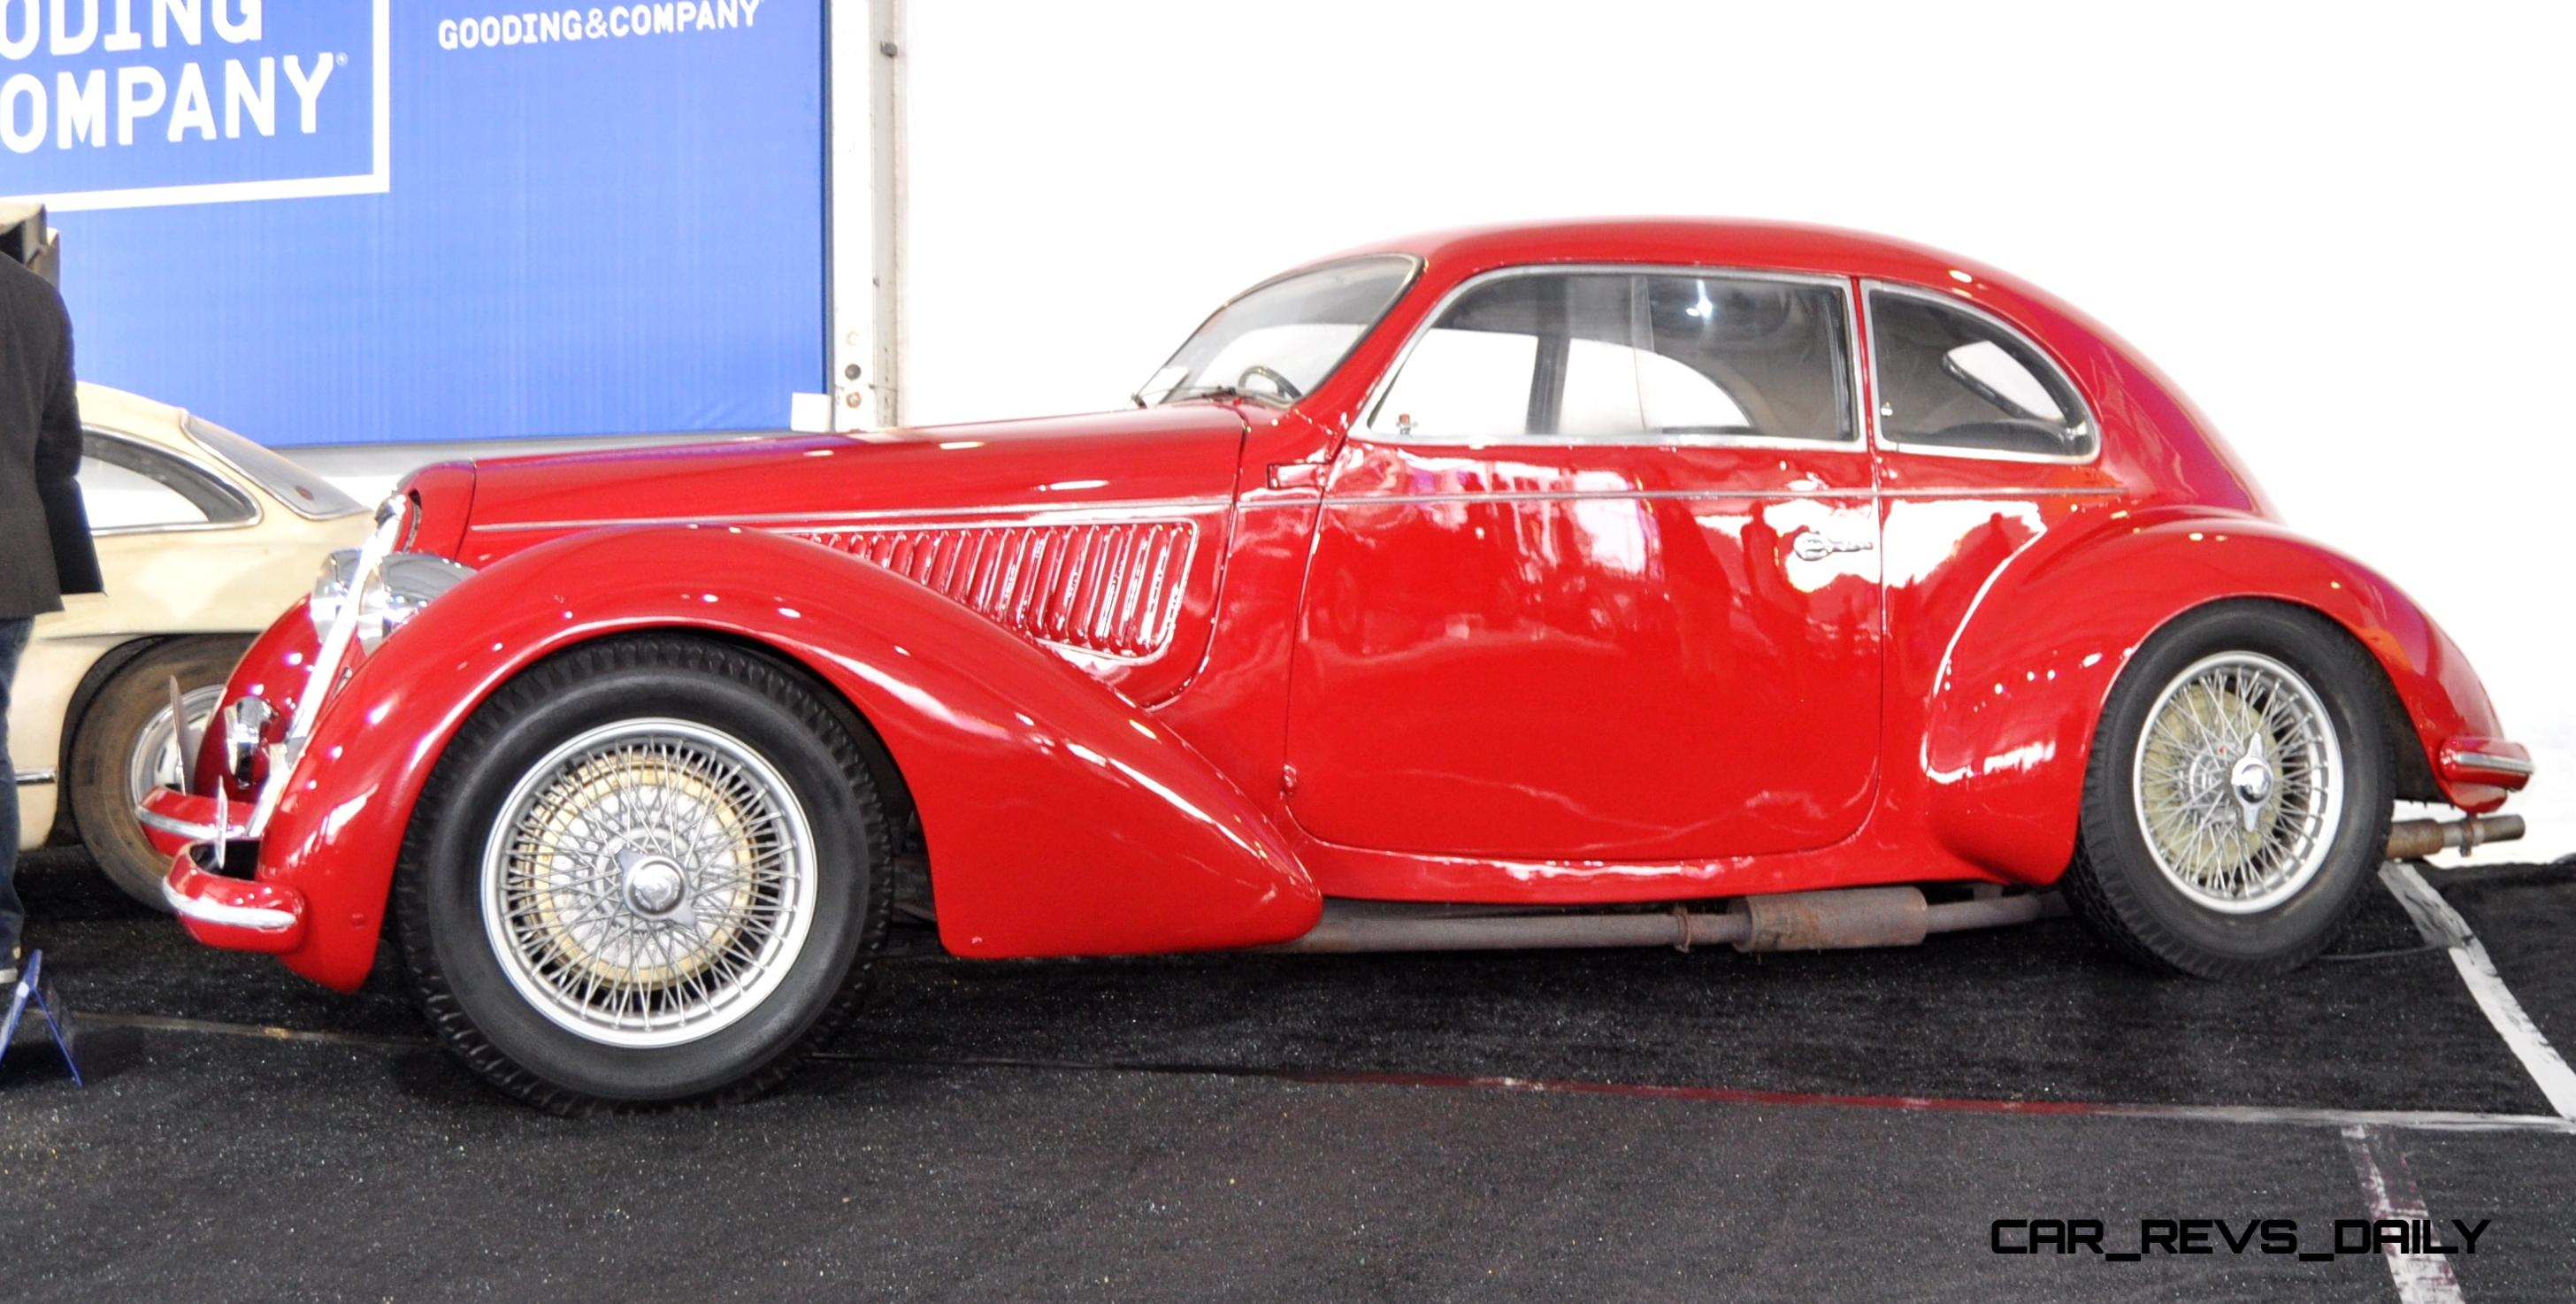 Gooding 2014 Pebble Beach Highlights 1938 Alfa Romeo 6c